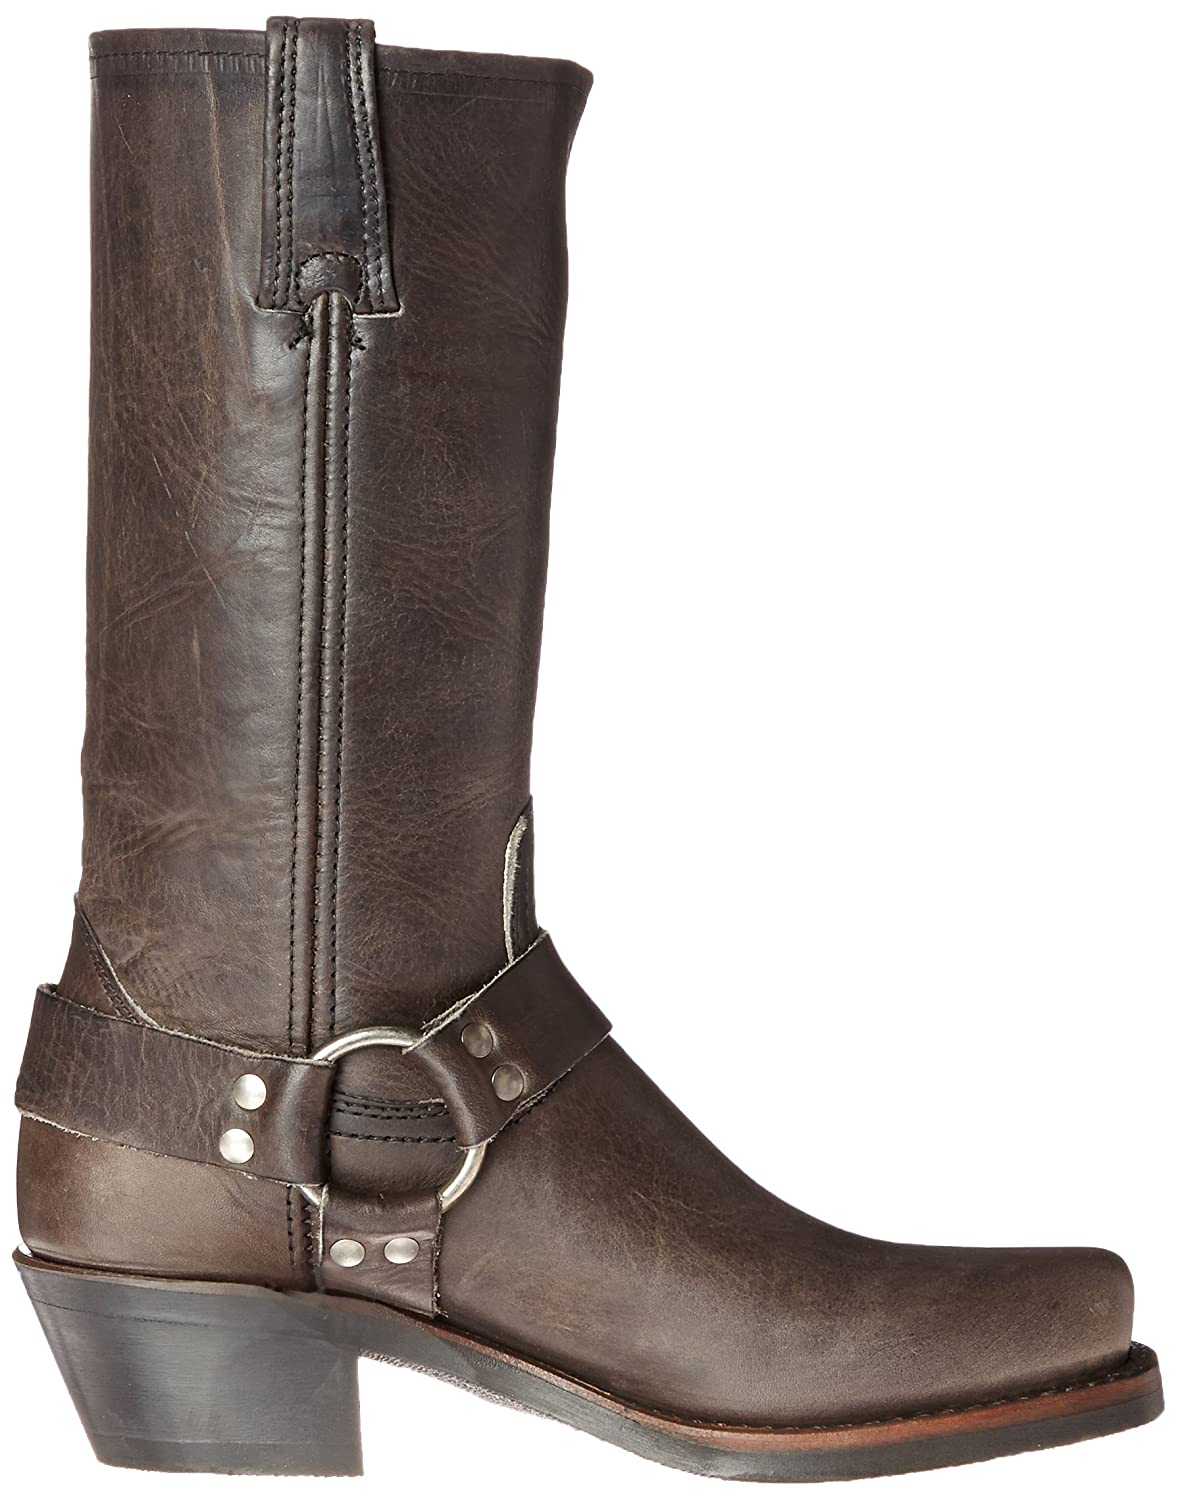 FRYE Women's 12R B(M) Harness Boot B00R54W1JM 6.5 B(M) 12R US|Smoke Washed Oiled Vintage-77298 582771